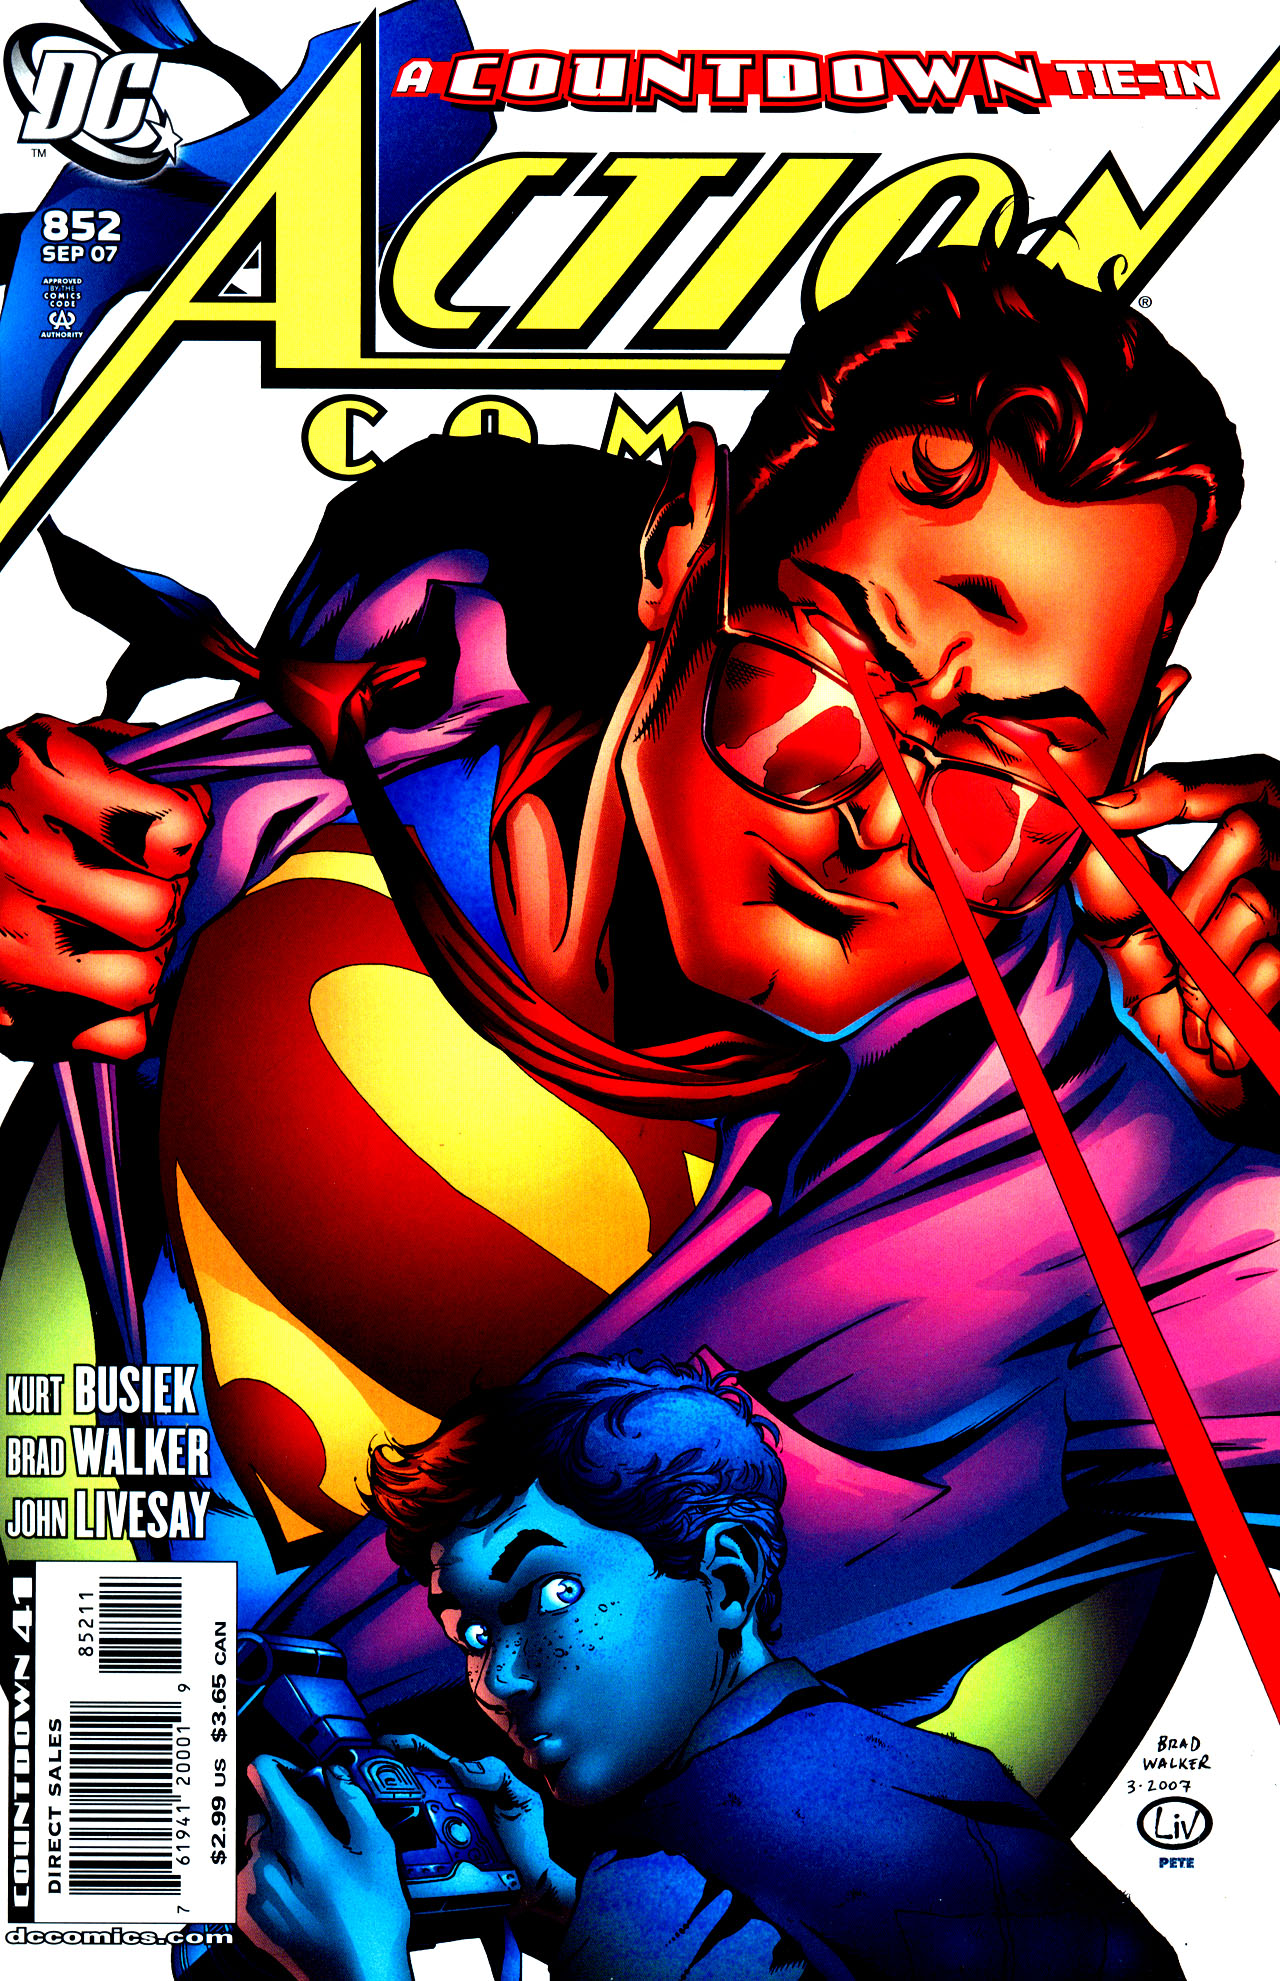 Read online Action Comics (1938) comic -  Issue #852 - 1